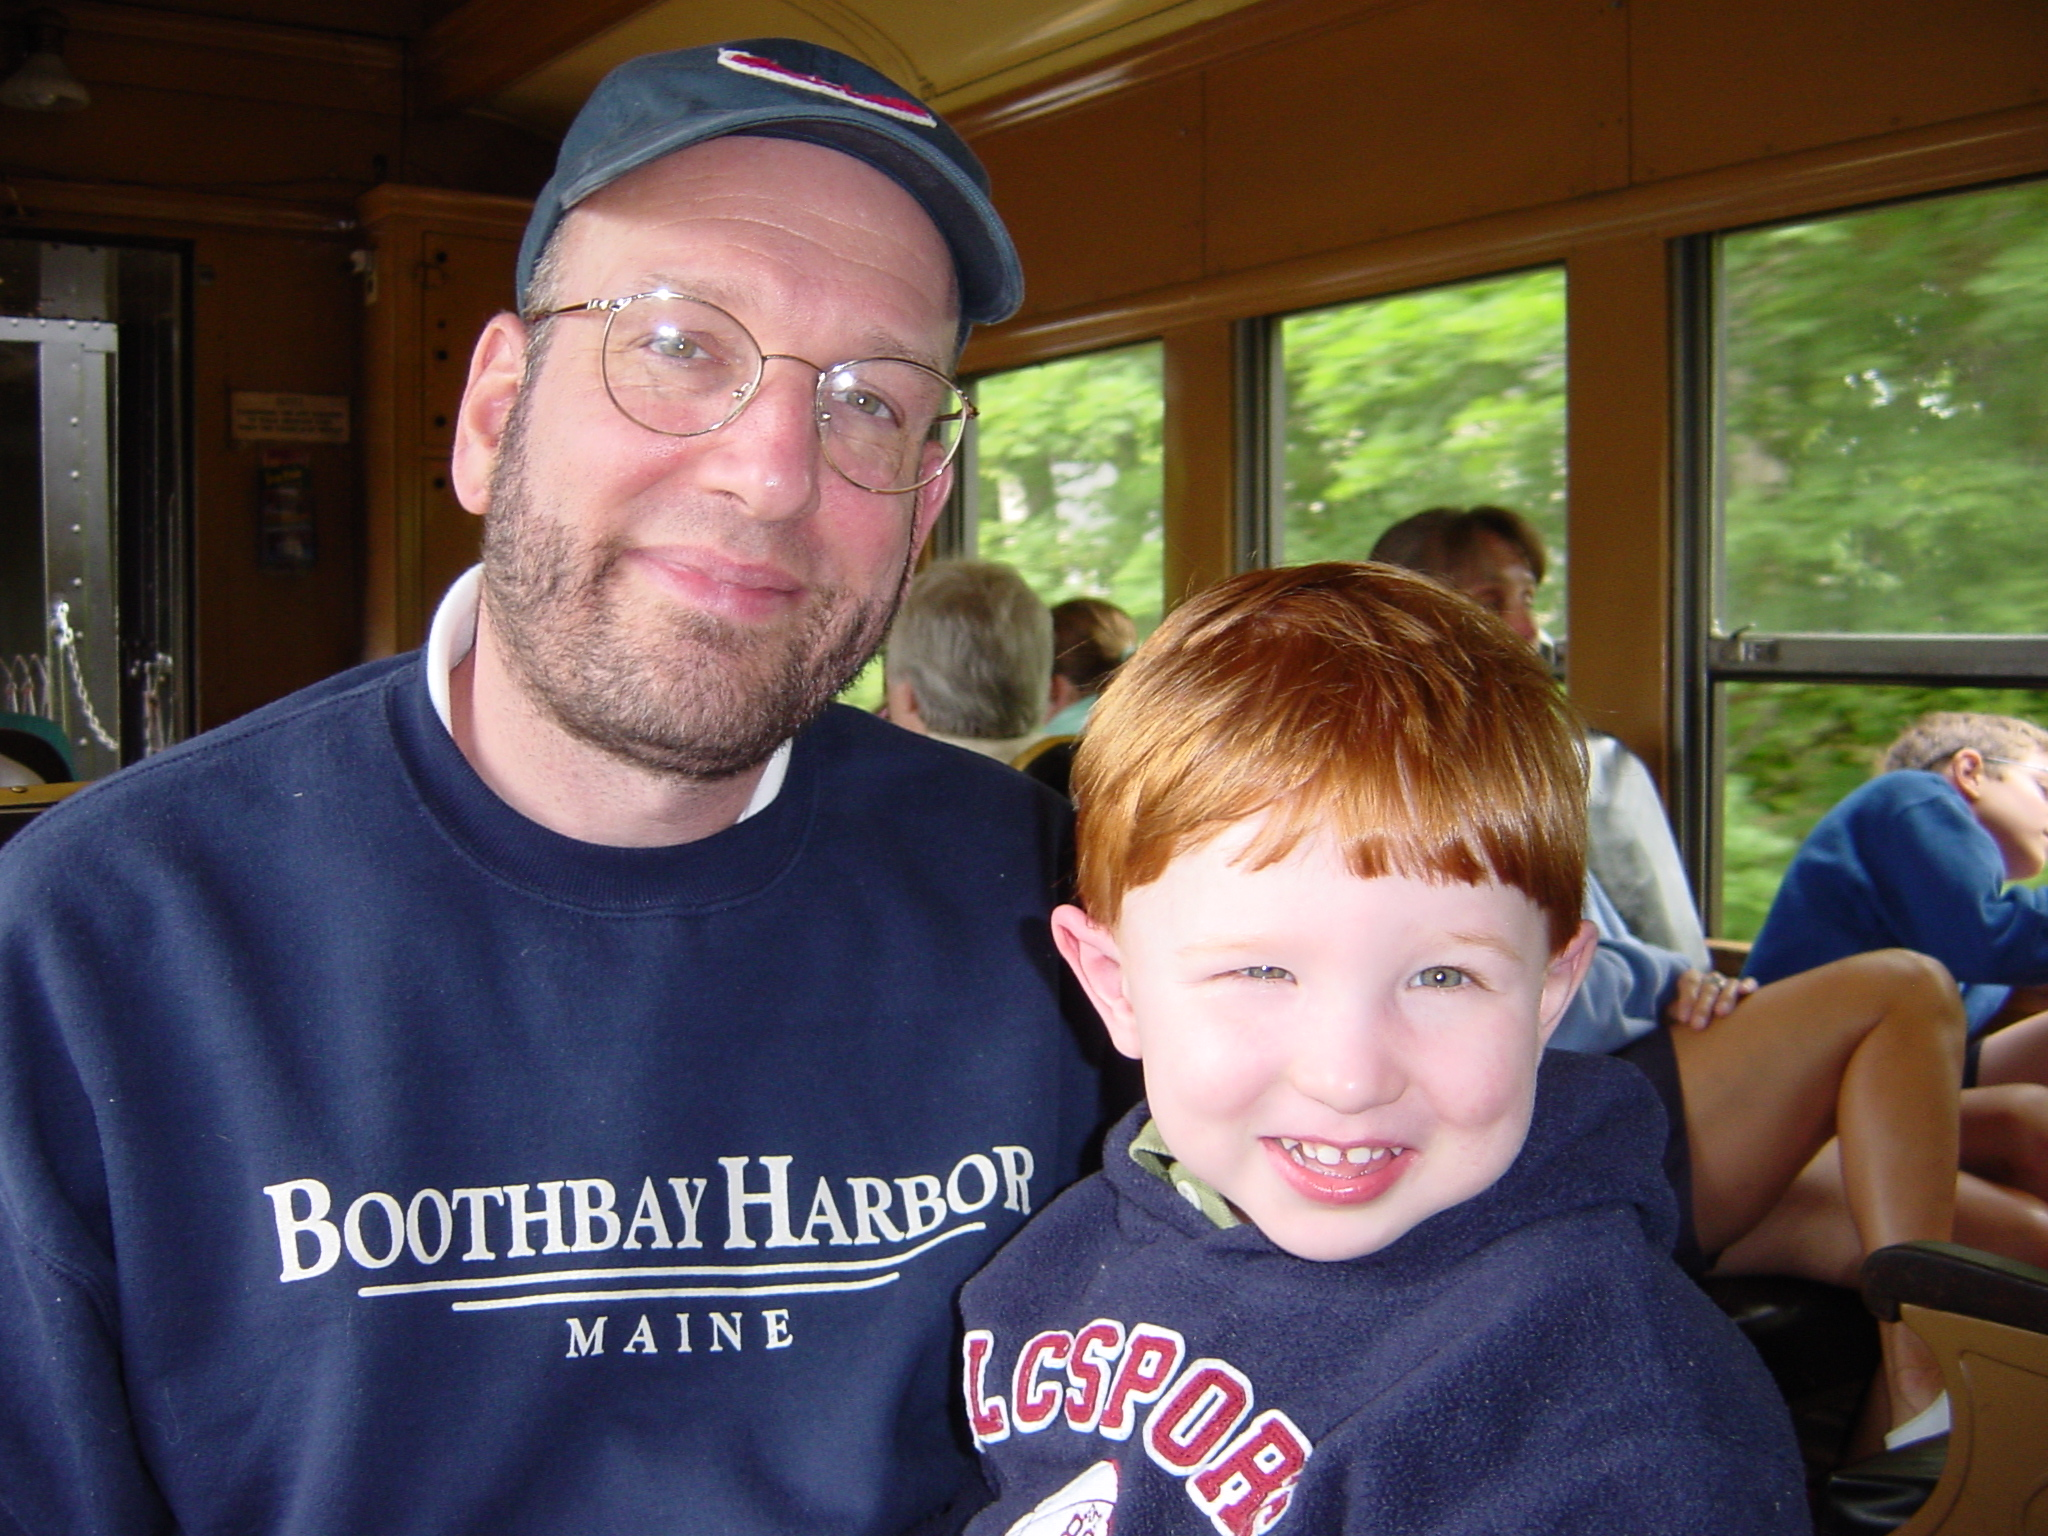 Riding the Essex CT Steam Train With My son